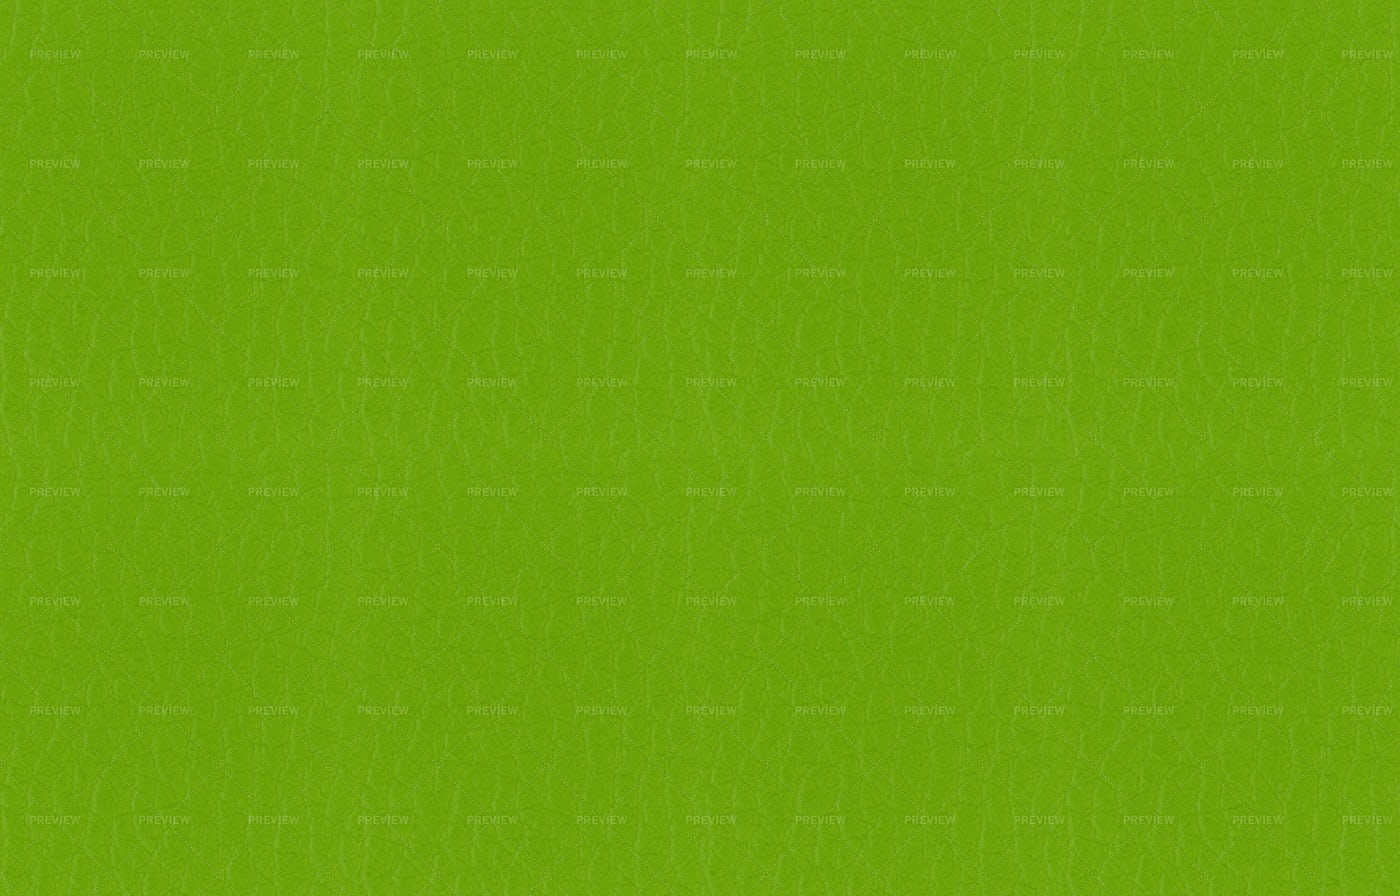 Green Faux Leather Texture: Stock Photos